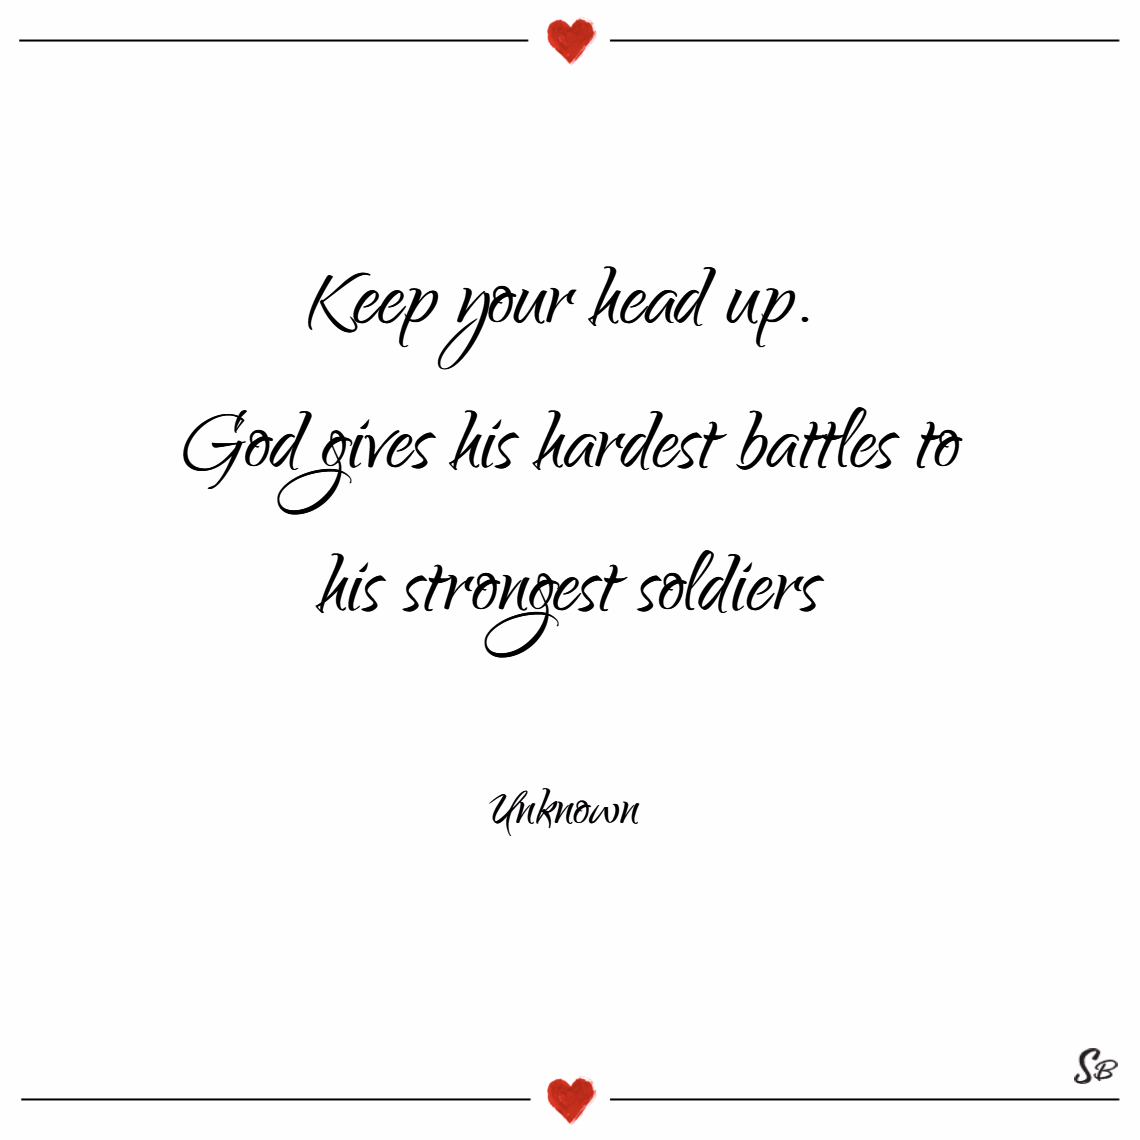 Keep your head up. god gives his hardest battles to his strongest soldiers. – unknown